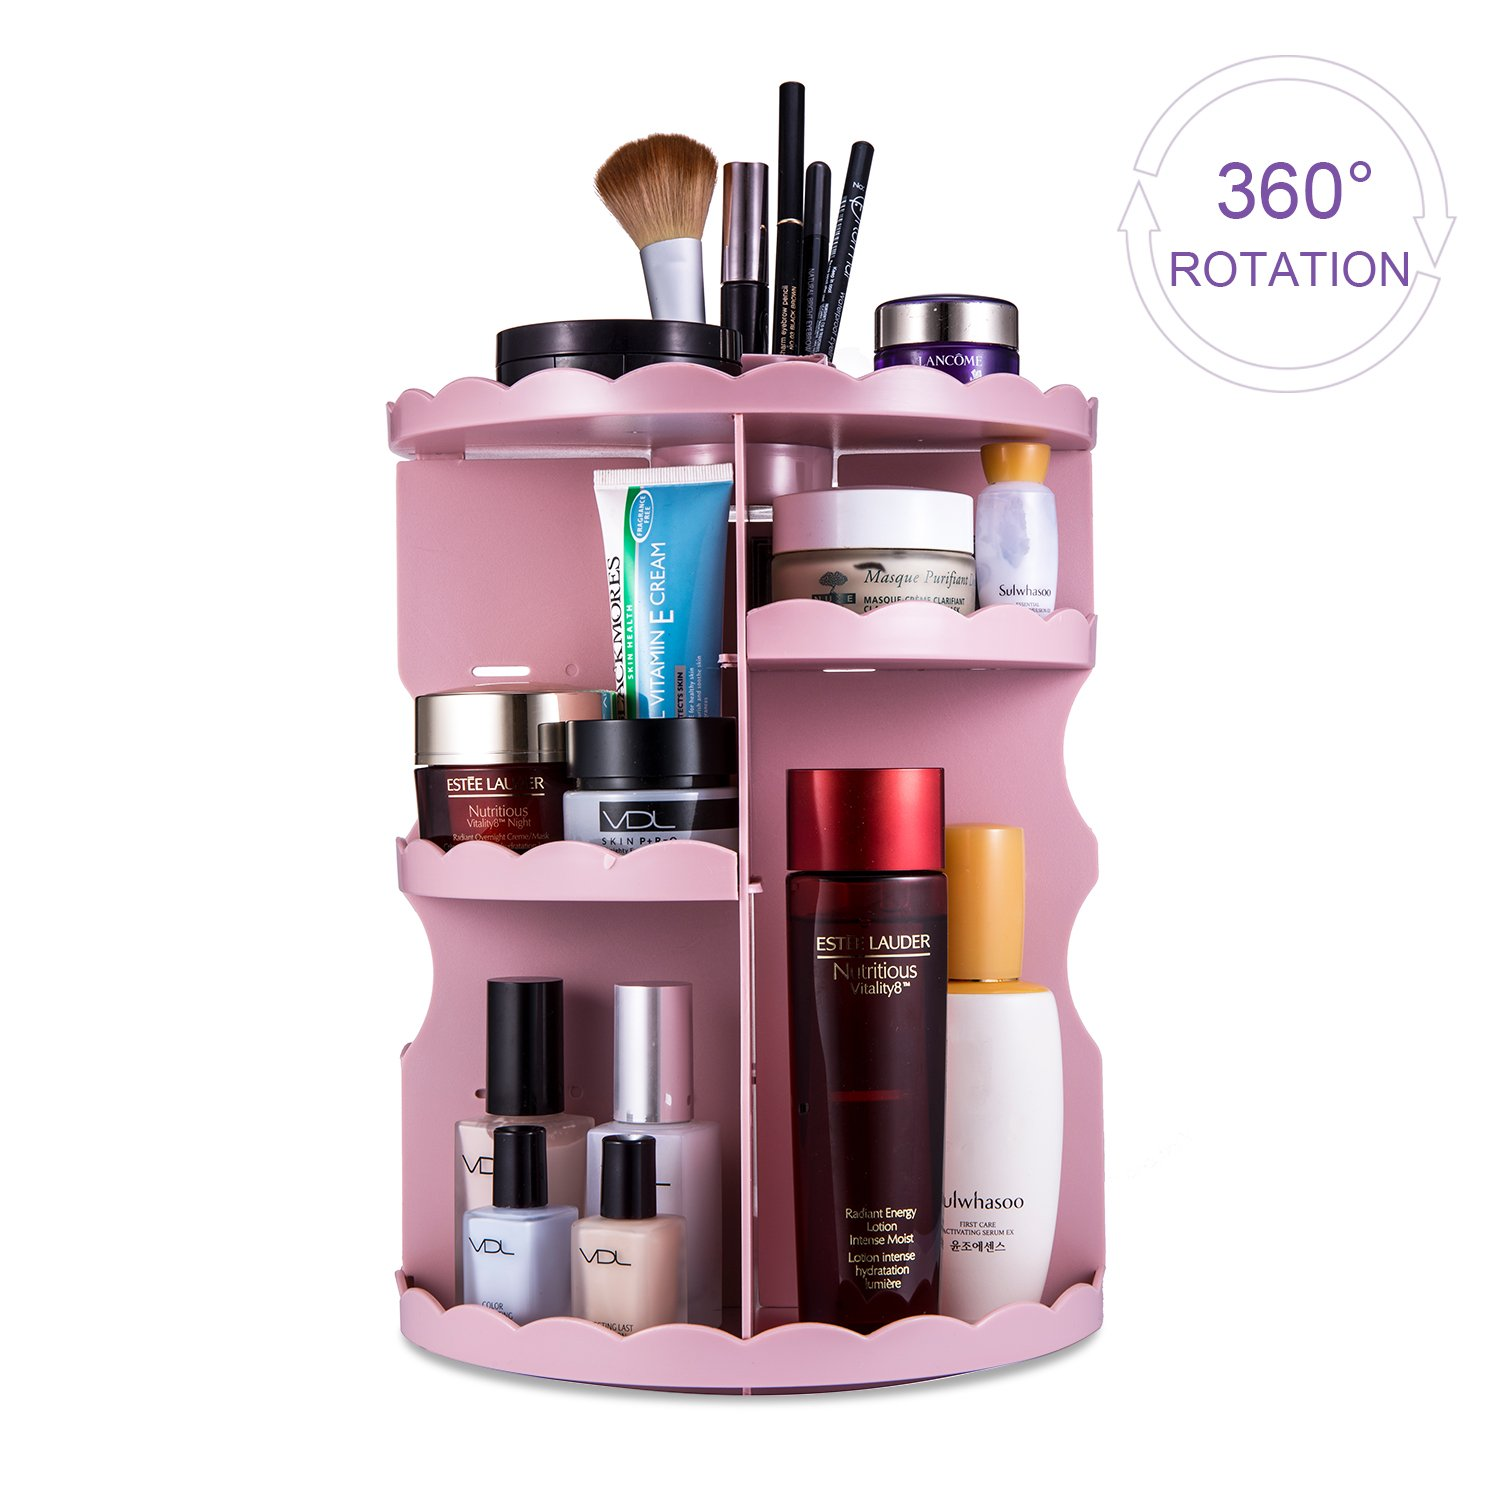 Rotating Makeup Organiser, Lesfit Adjustable 360 Degree Rotation 8 Layers Large Capacity Makeup Shelf Cosmetic Storage Organiser for Nail Polish, Eye Shadow, Lipsticks, Makeup Brushes ( Black, 320*230MM)